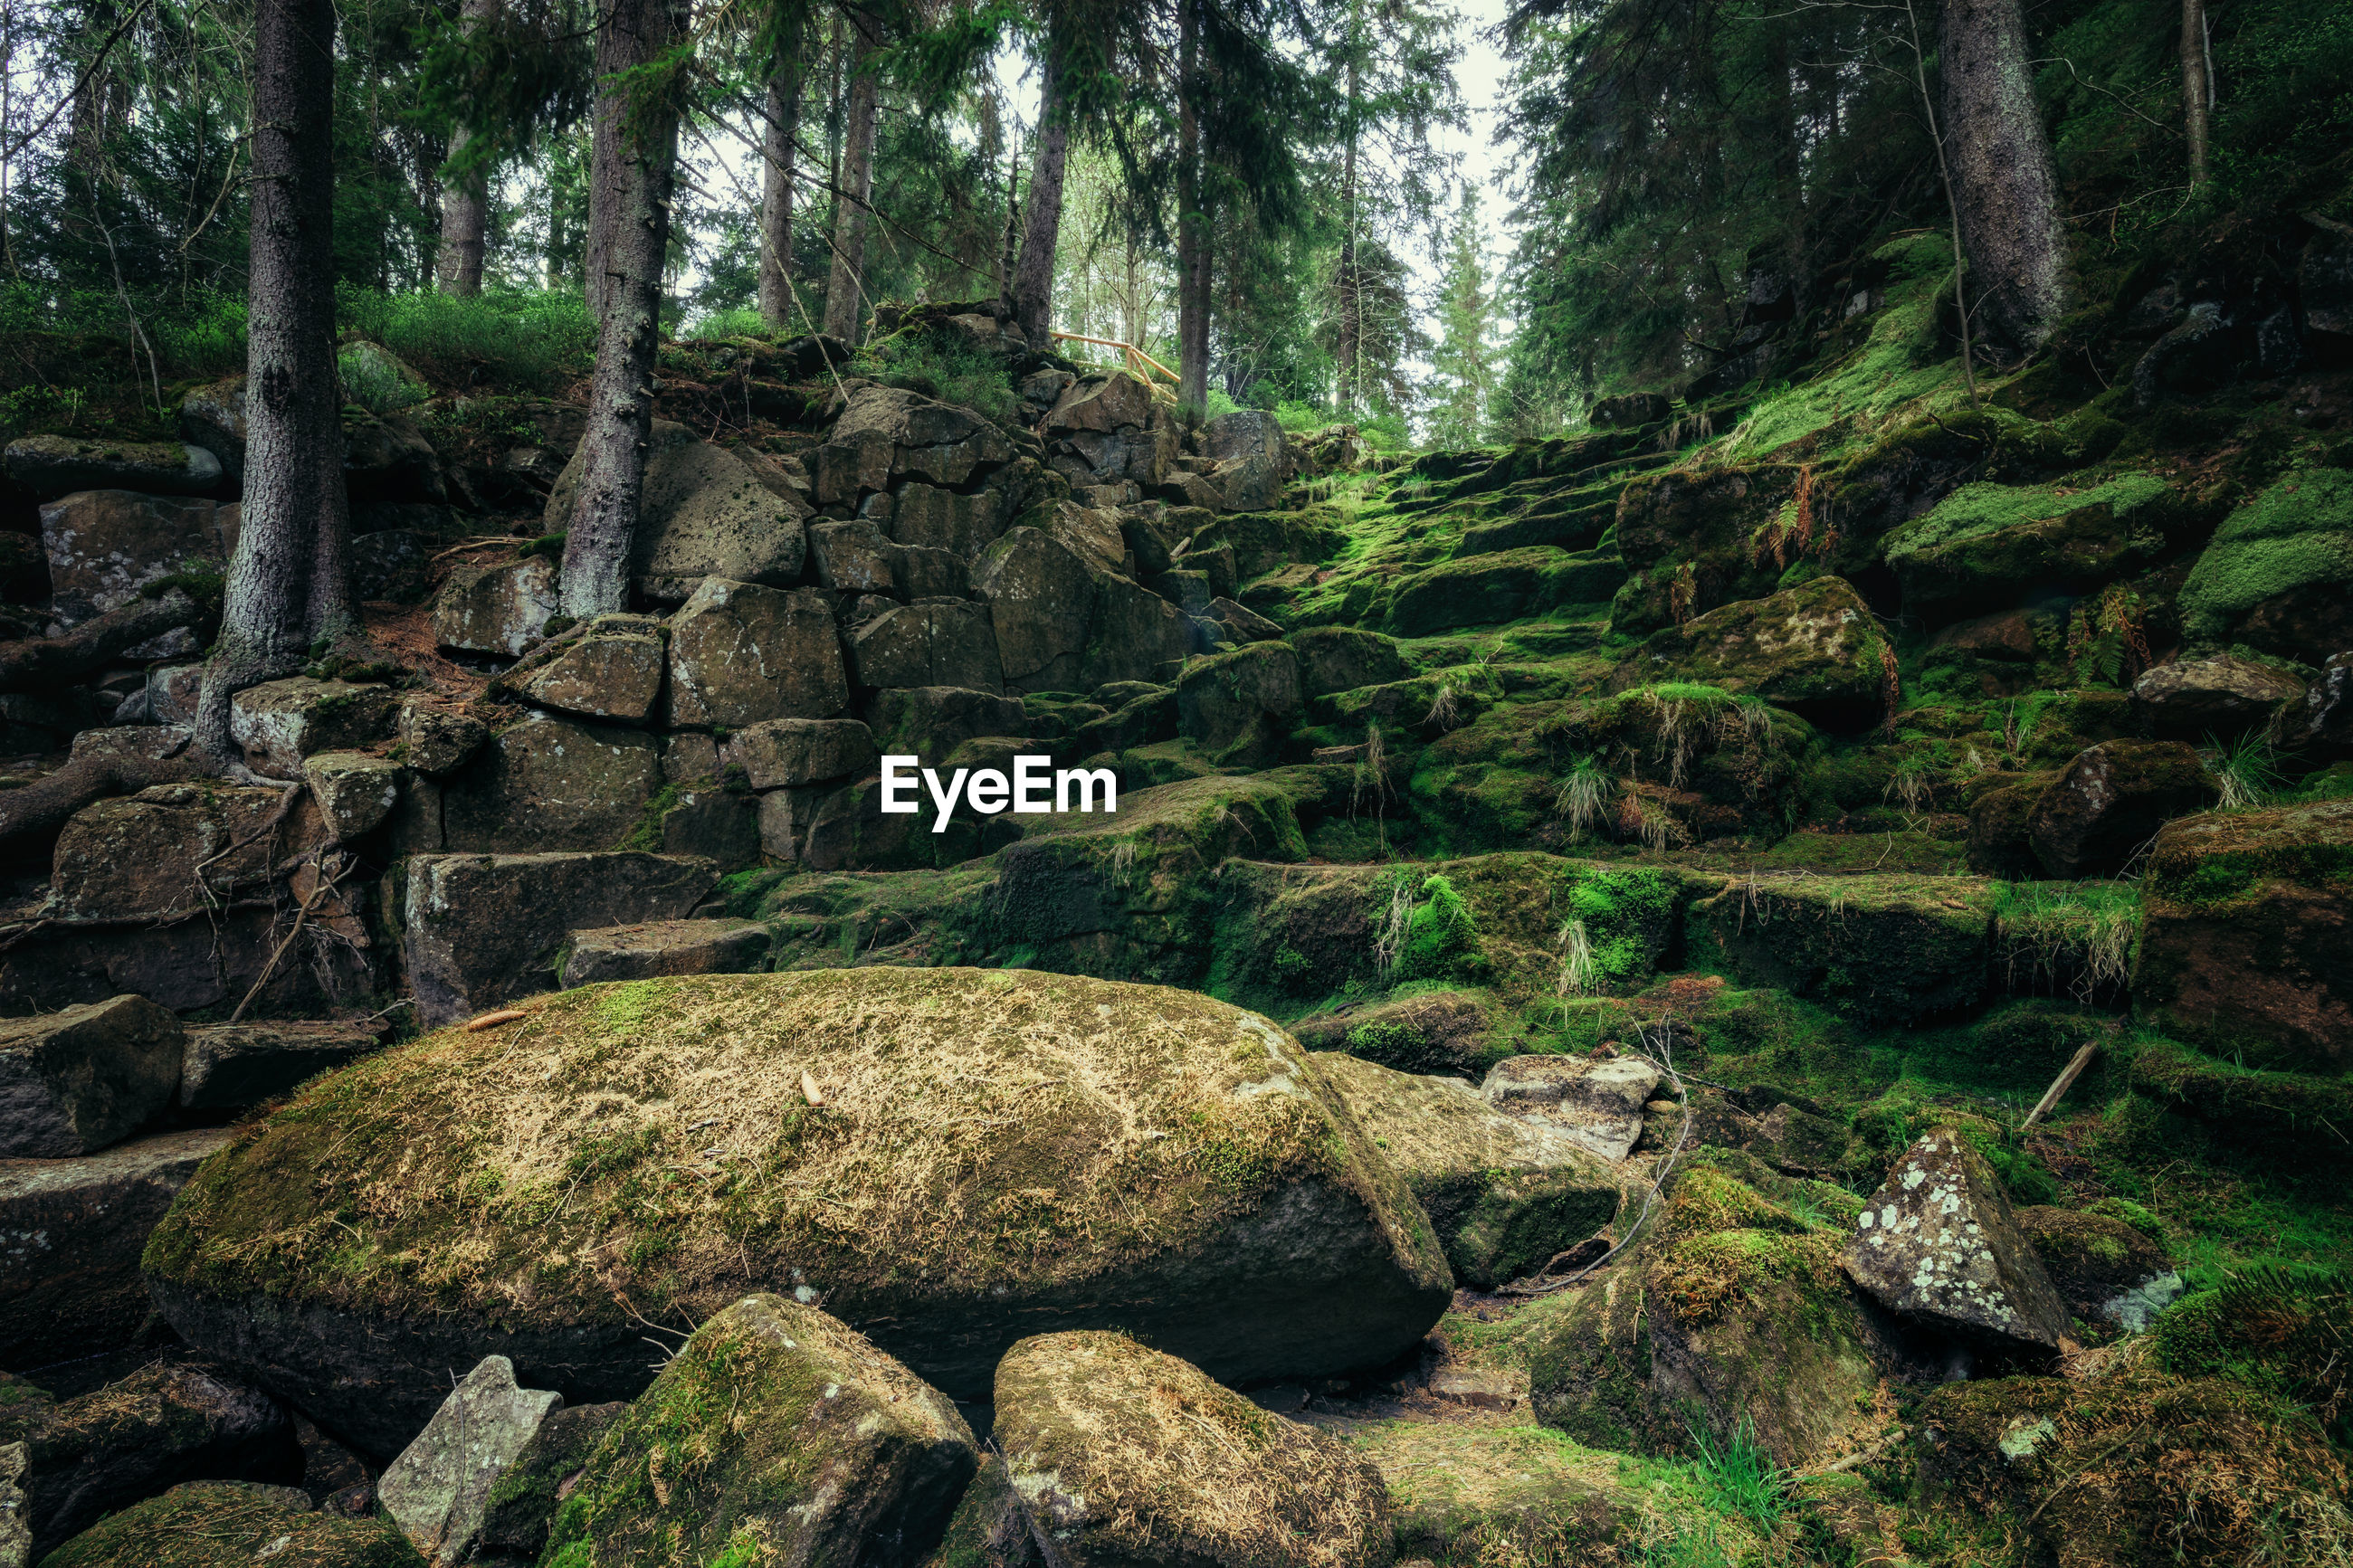 Moss covered rocks by trees in forest